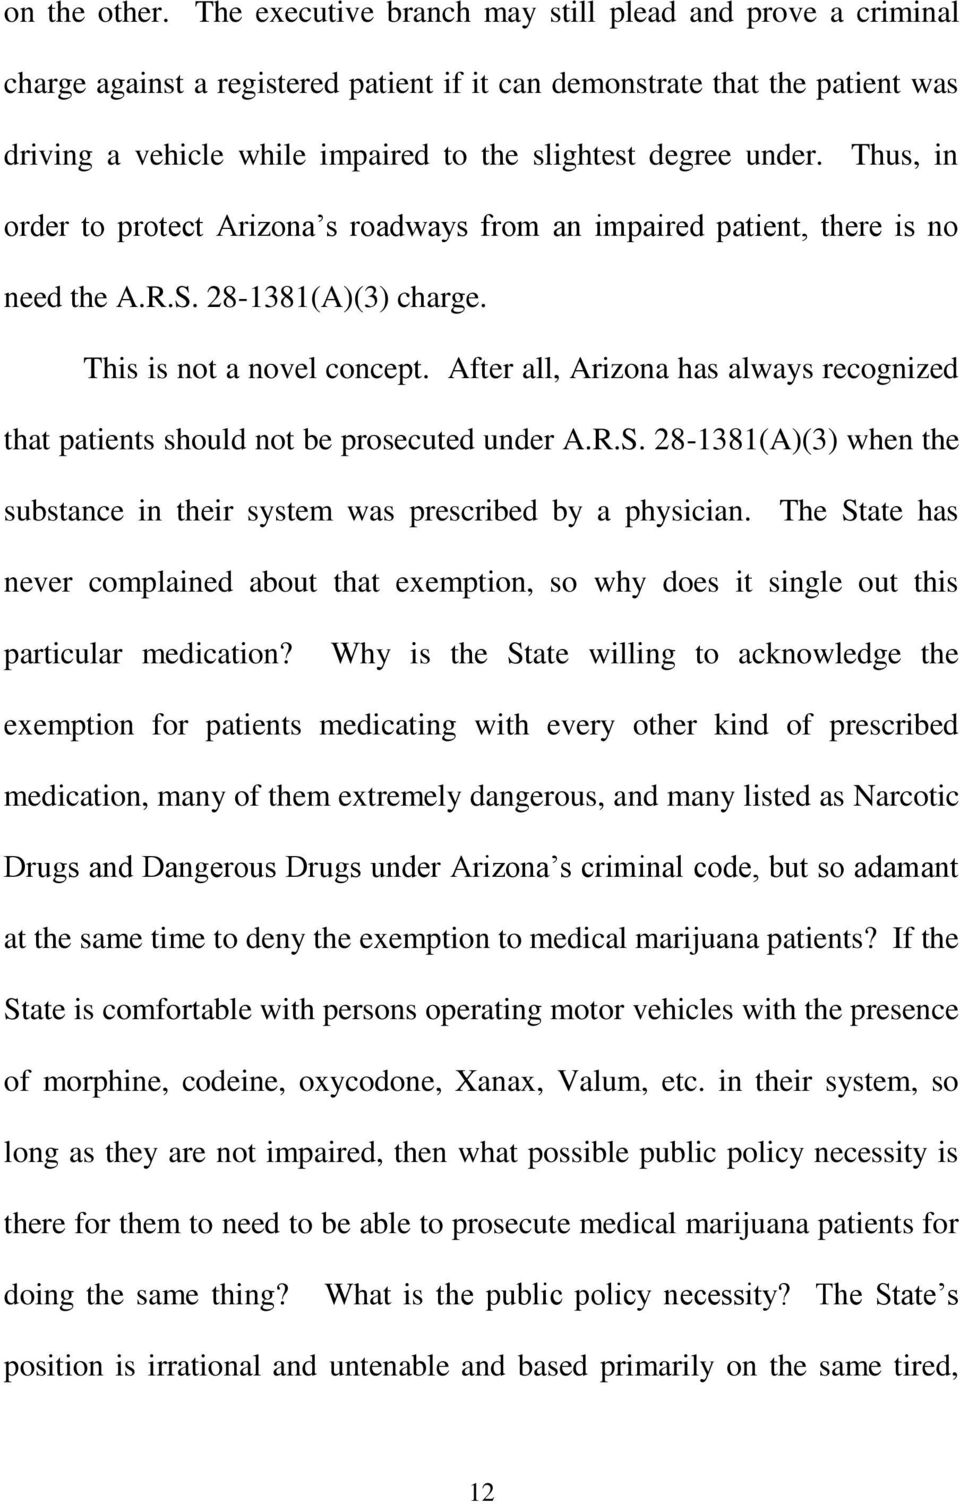 Thus, in order to protect Arizona s roadways from an impaired patient, there is no need the A.R.S. 28-1381(A(3 charge. This is not a novel concept.